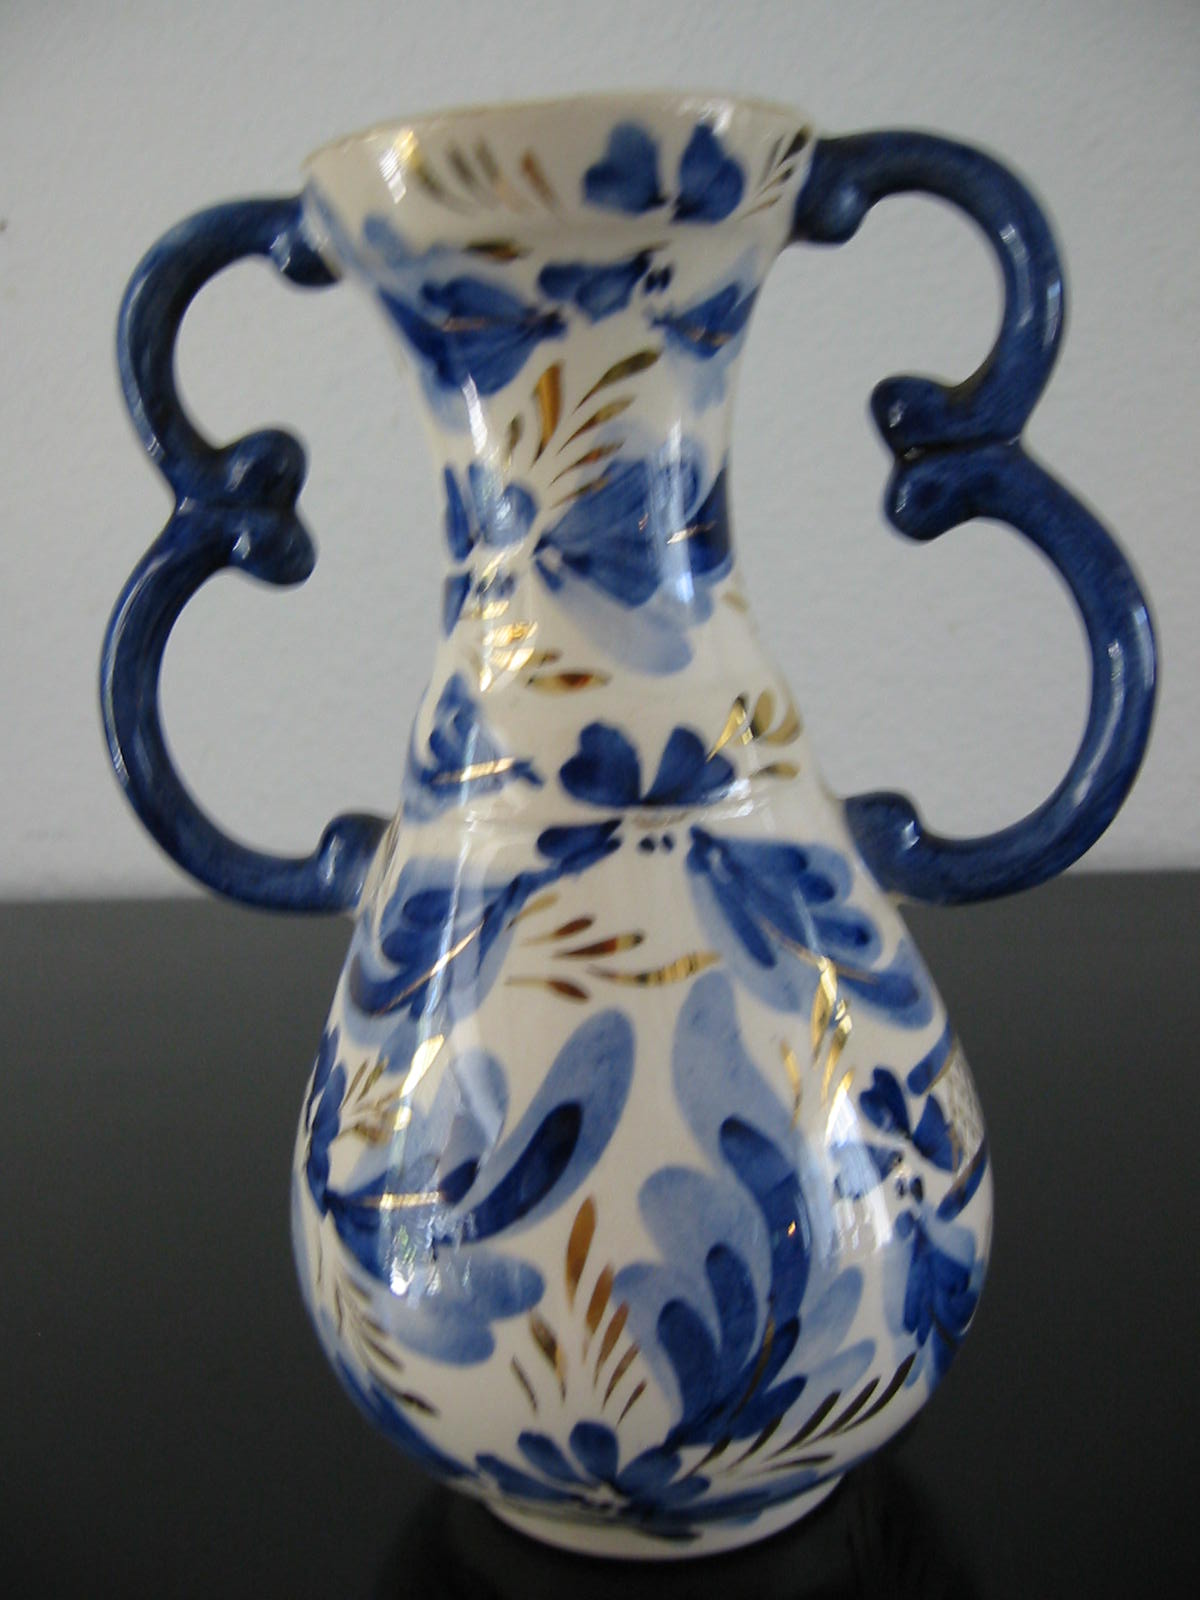 Ceramic vase gold handles blue flowers belgian art deco tapered neck for sale - Deco vintage belgique ...